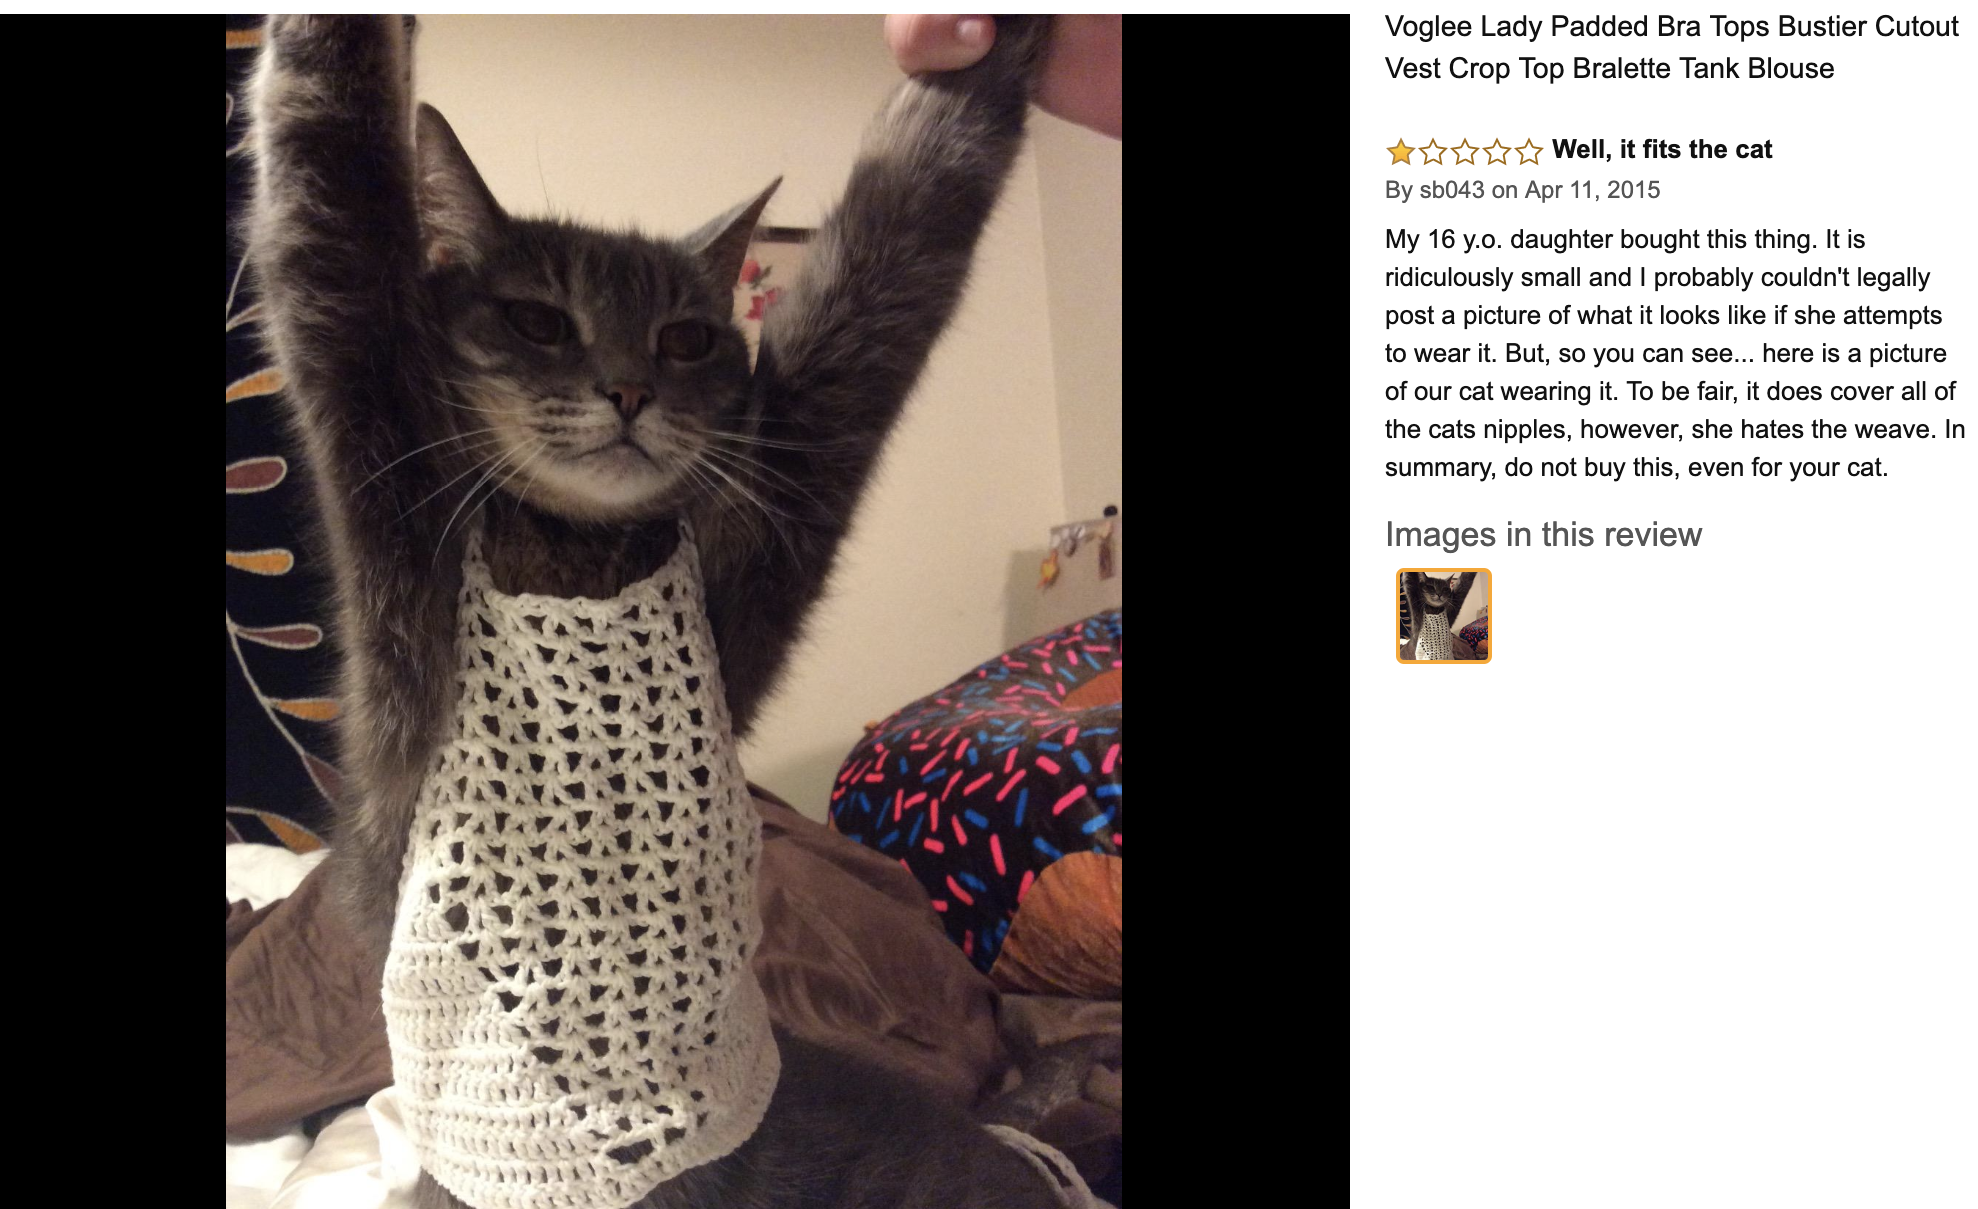 an Amazon review of a women's top that was only big enough to fit a cat